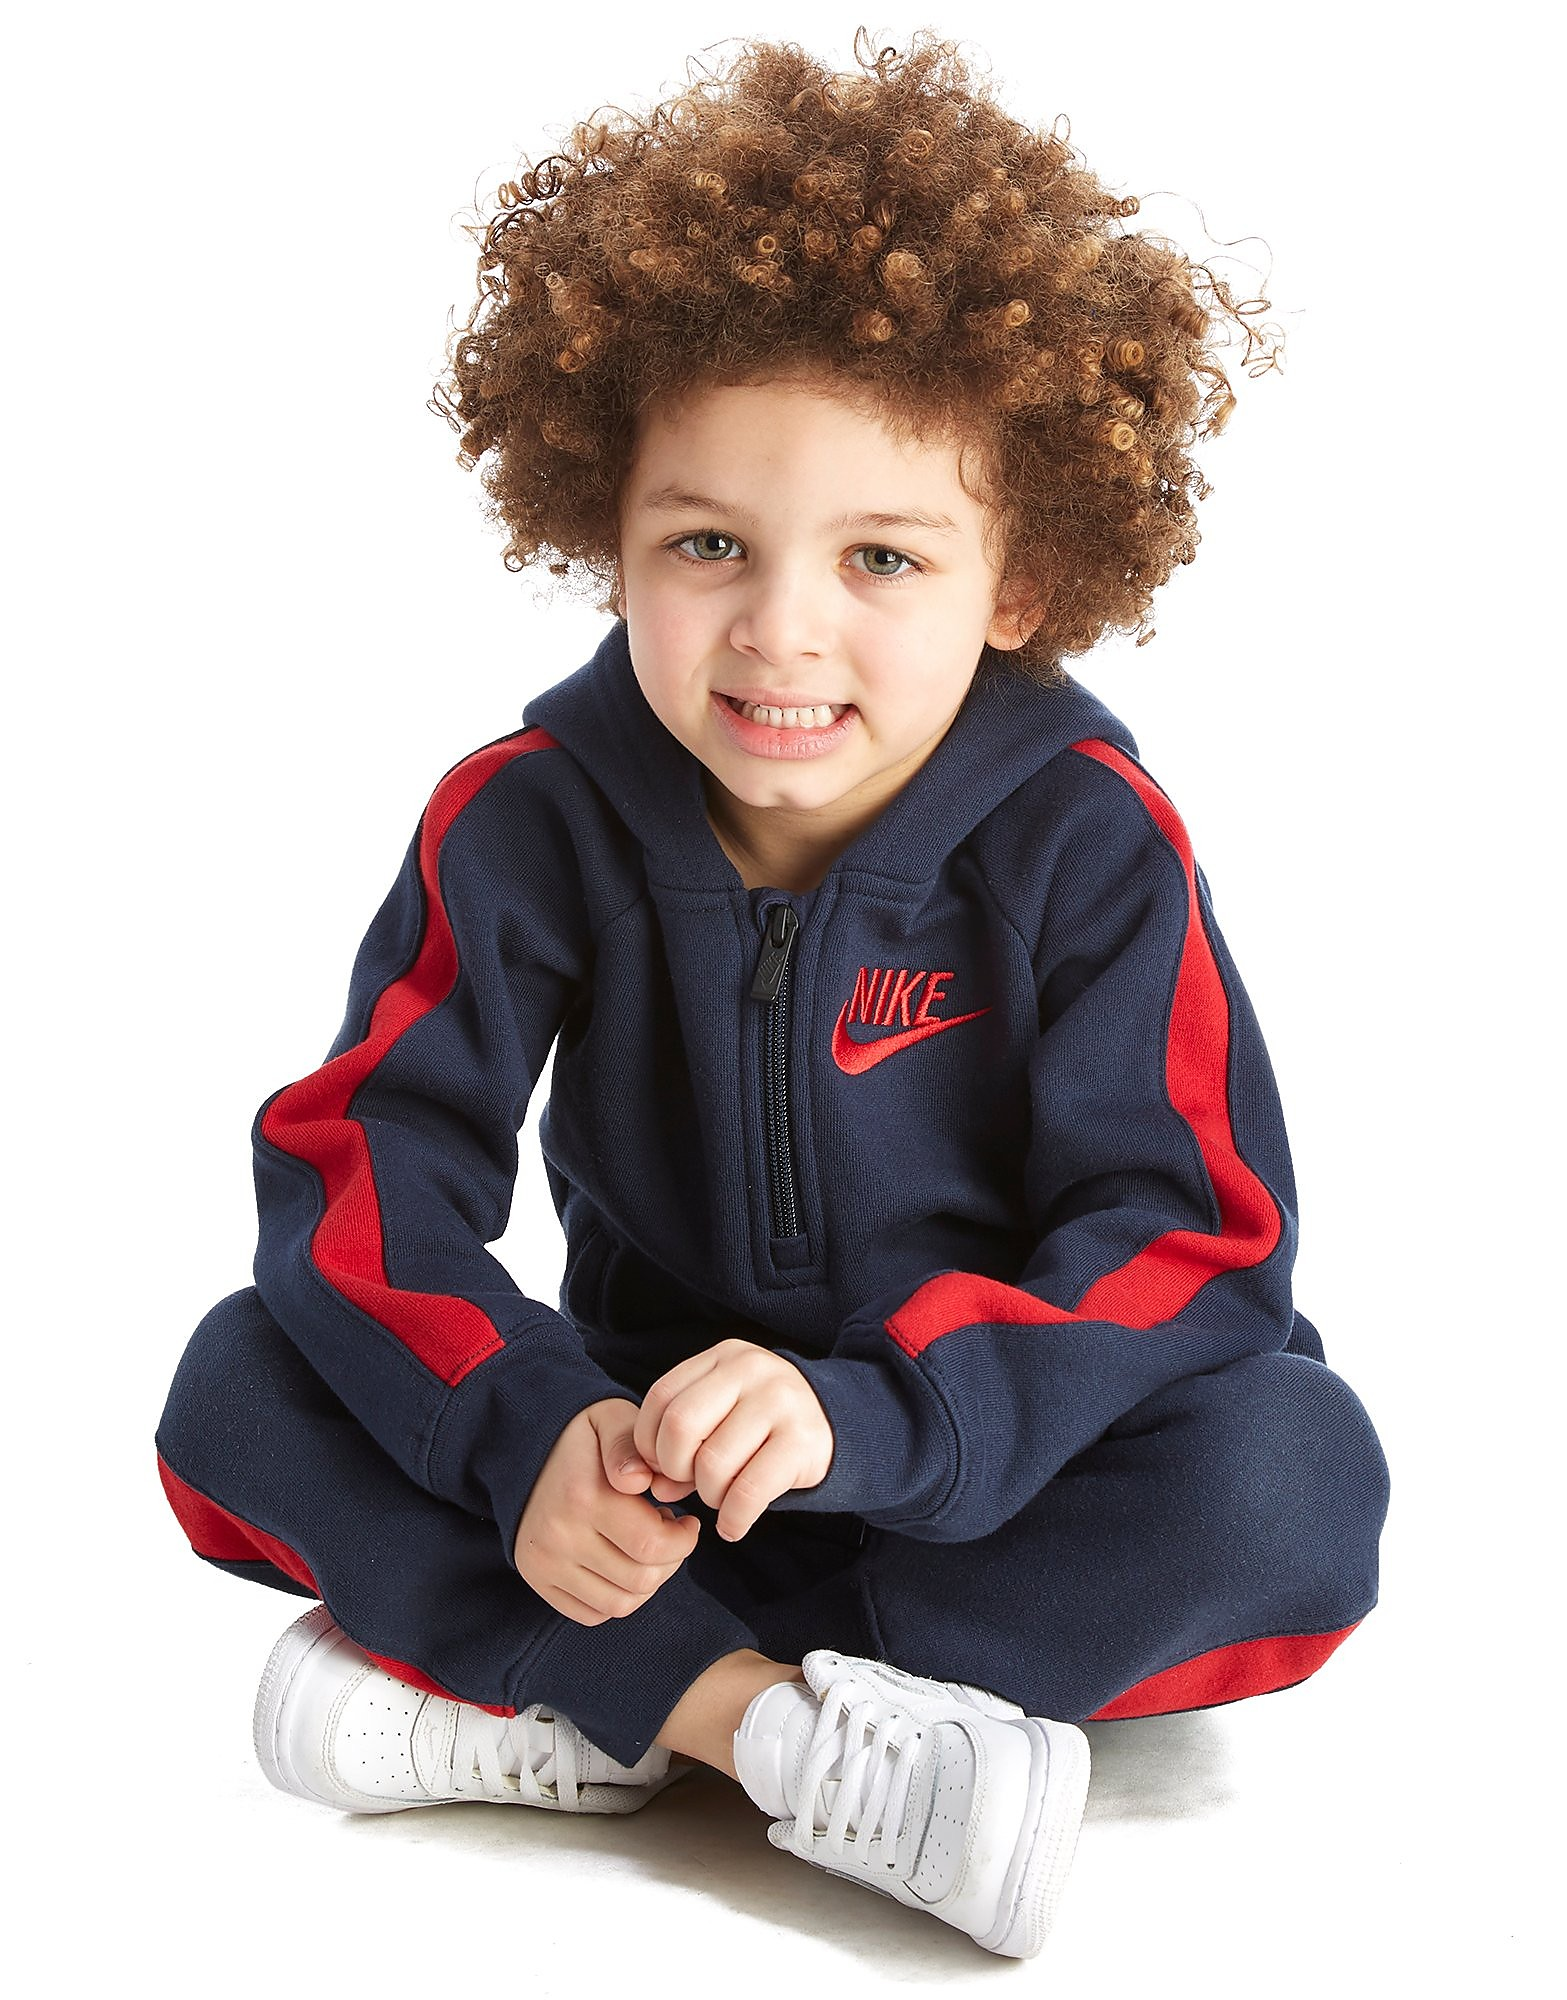 Nike Futura 1/4 Zip Suit Children